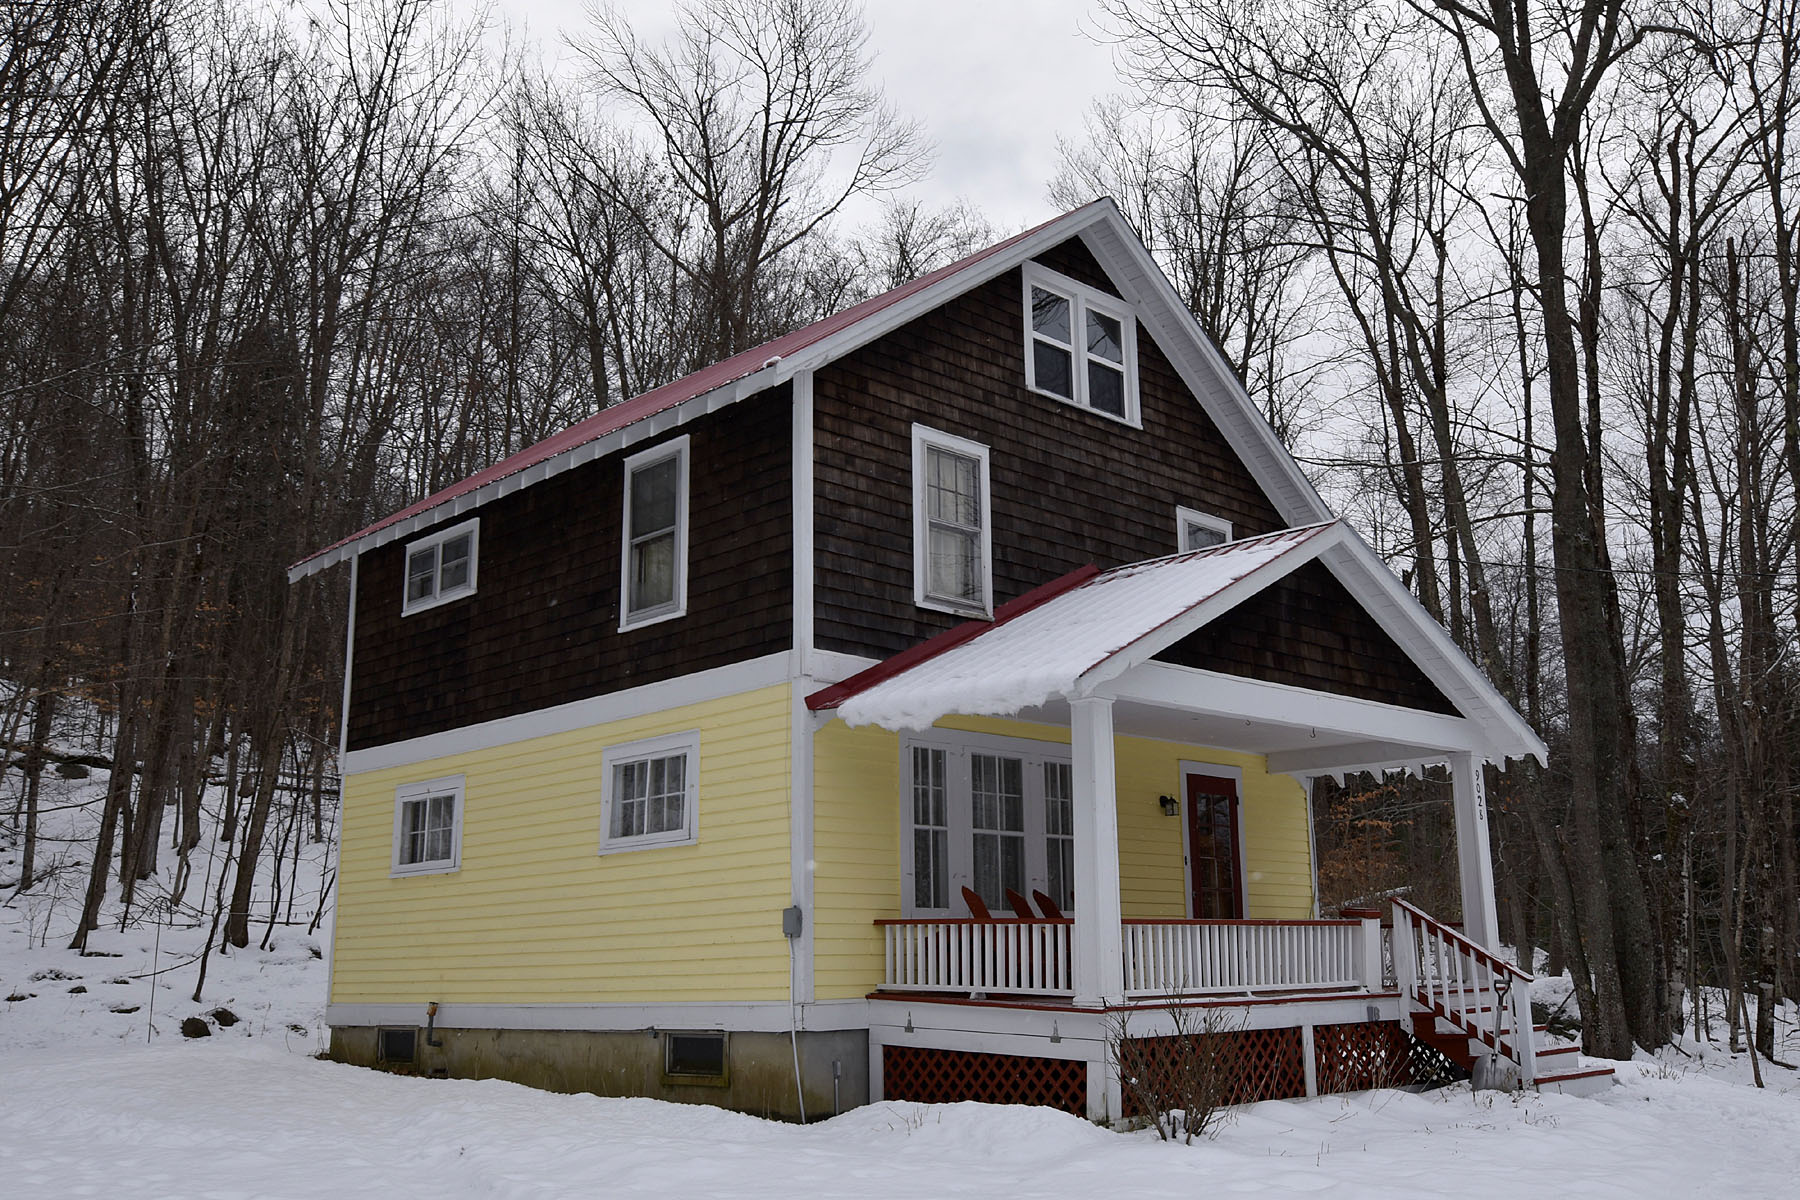 Single Family Homes for Sale at 9028 NYS Rt 30 9028 State Route 30 Blue Mountain Lake, New York 12812 United States